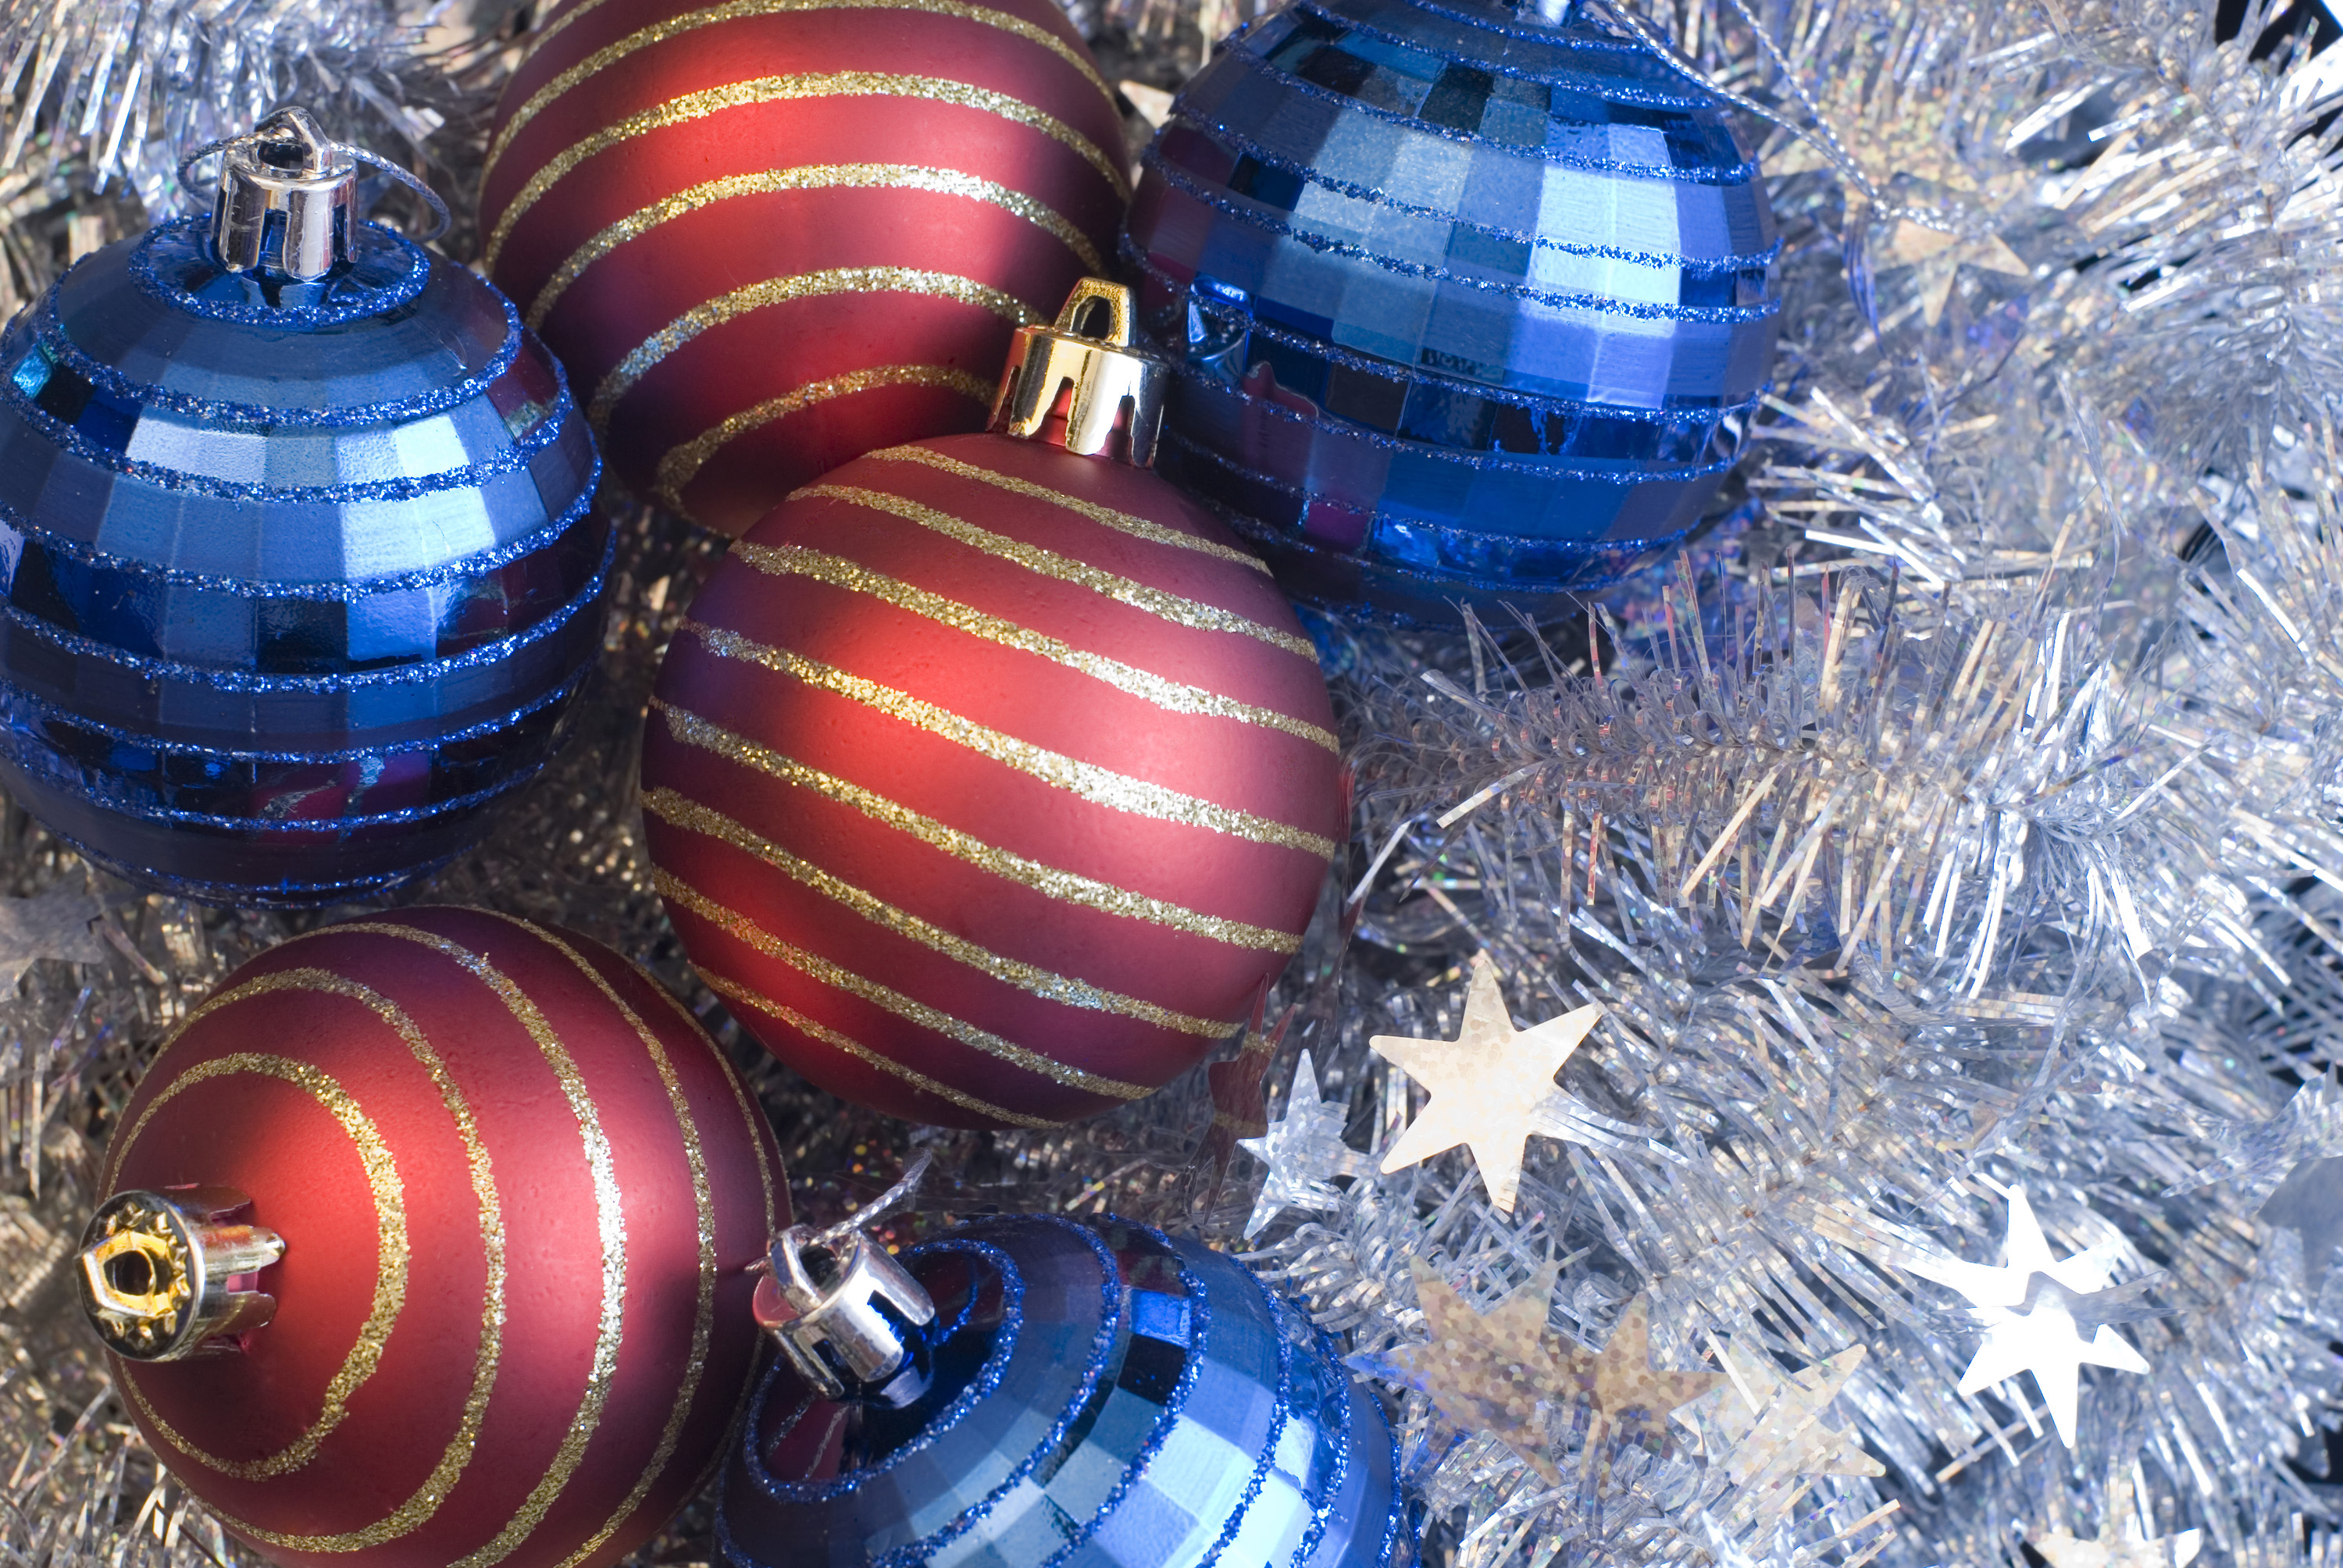 blue and red festive baubles on a background of silver tinsel